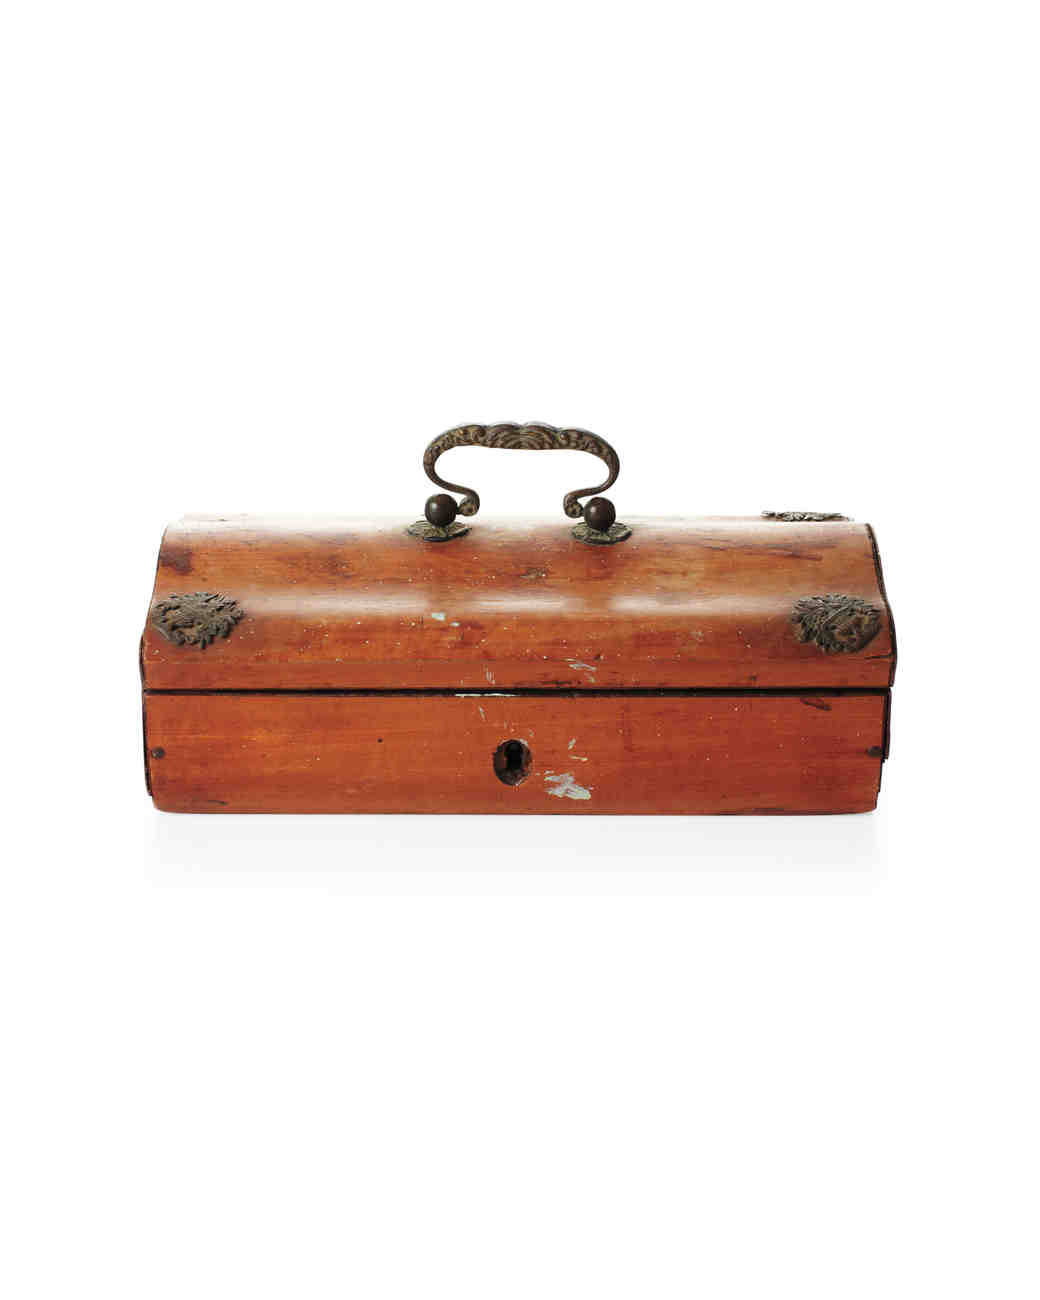 antique-box-007-md108883.jpg